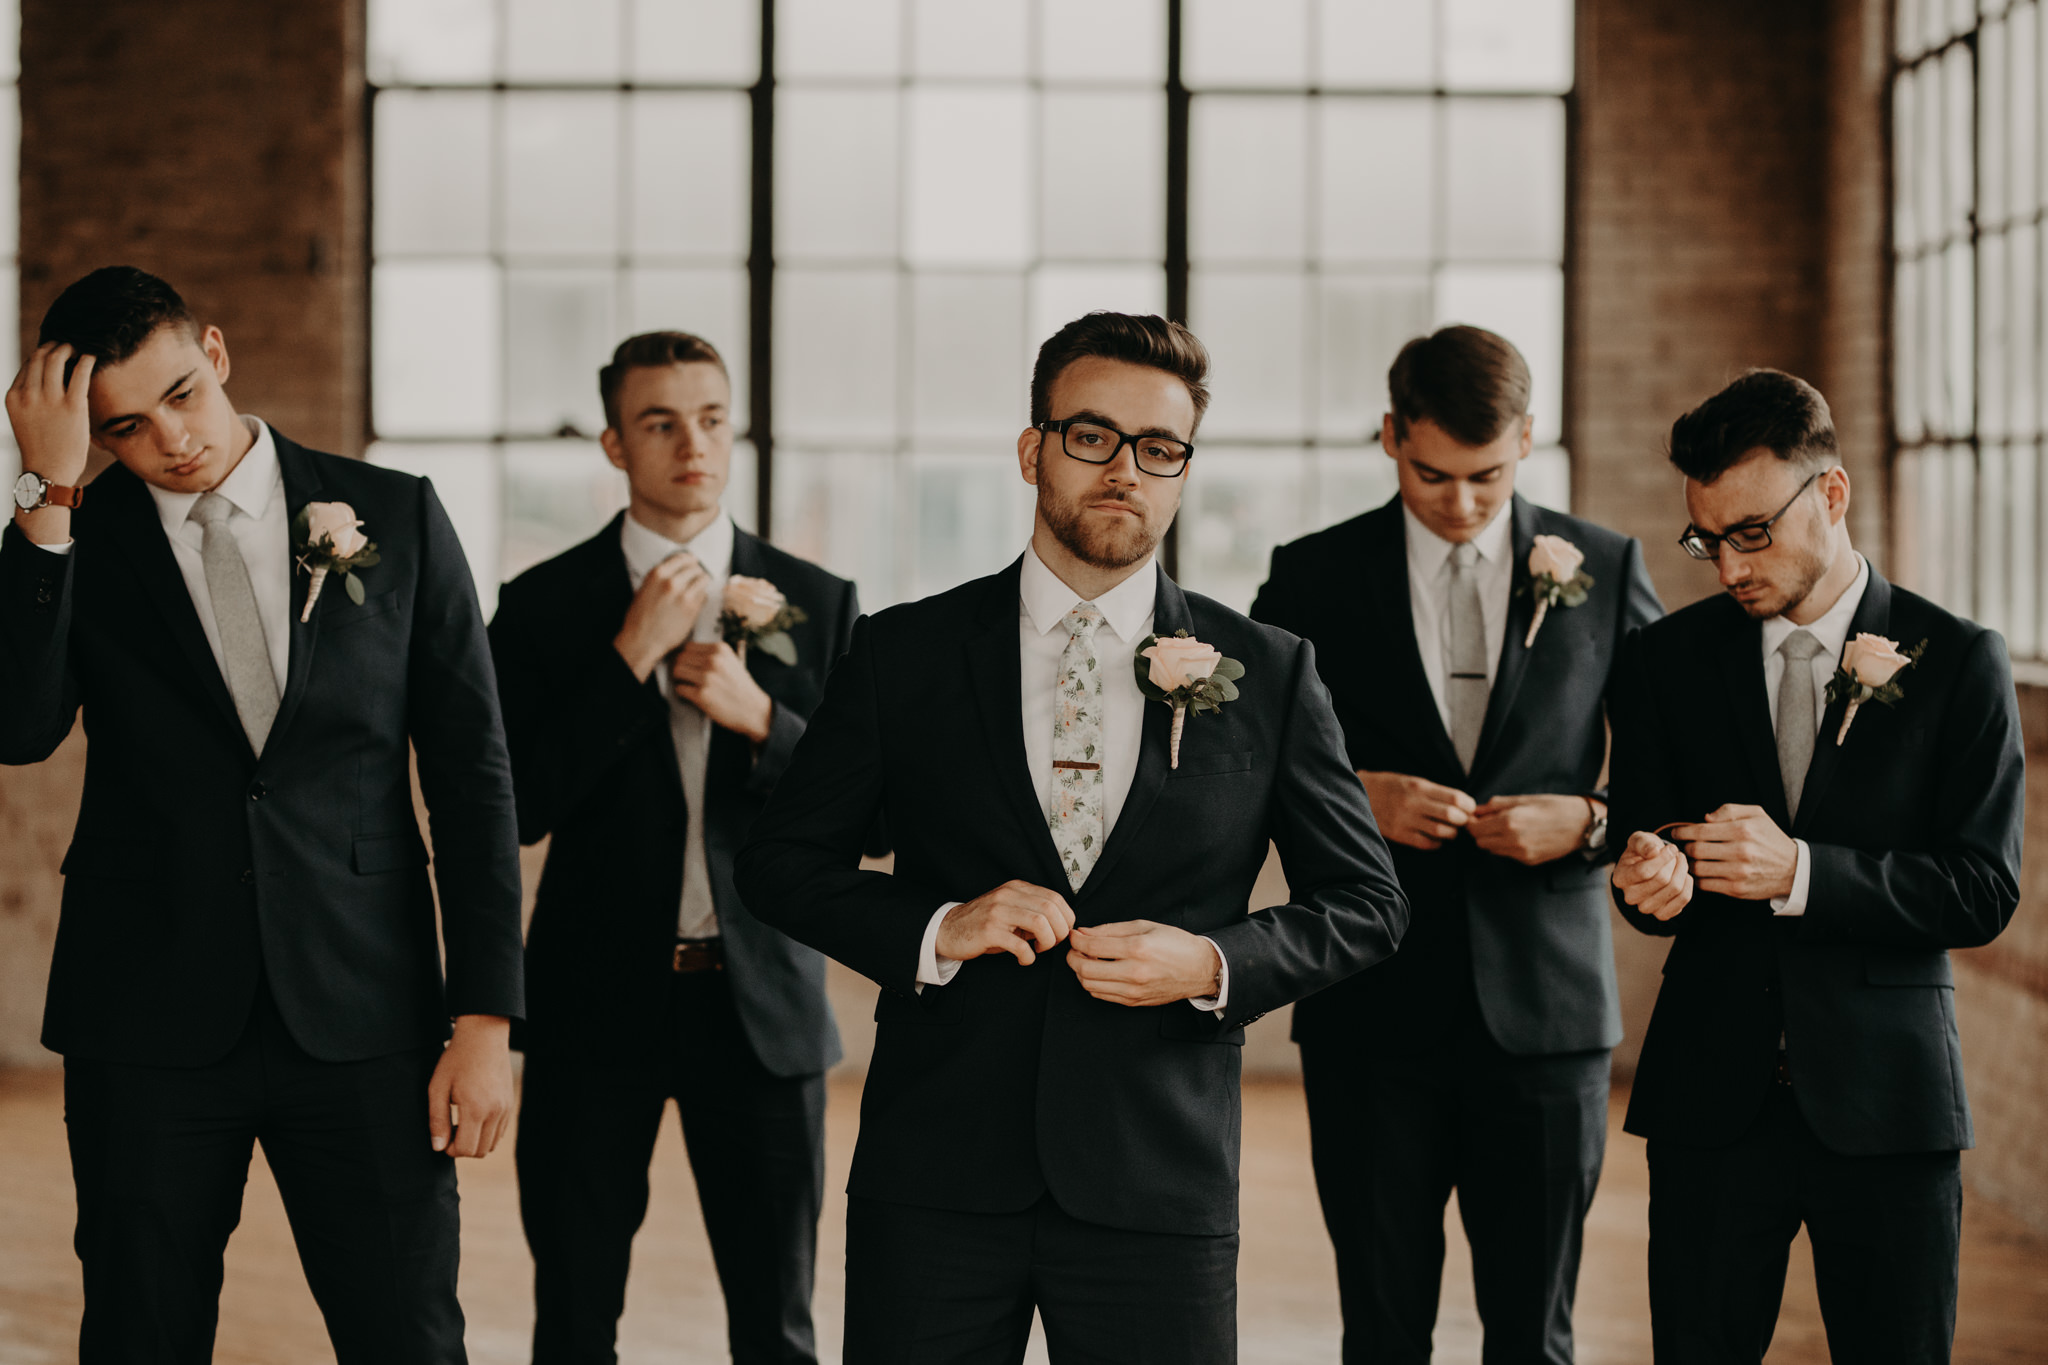 Groomsmen in navy suits and floral ties standing in front of windows and brick